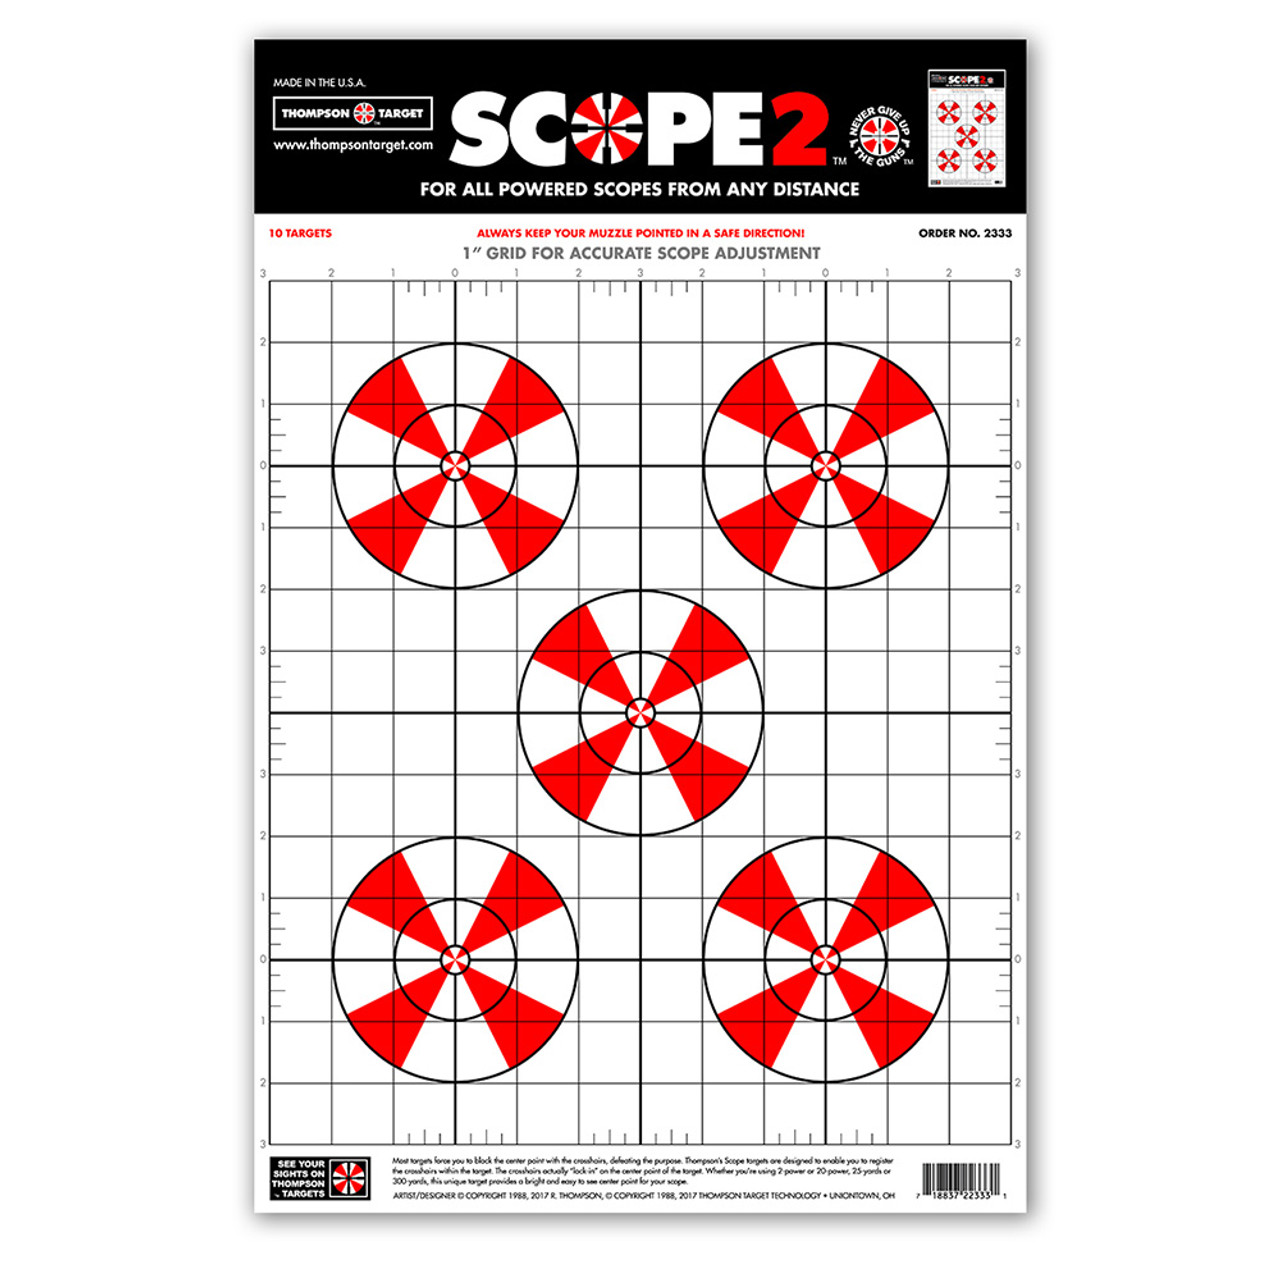 photo regarding Printable Sight in Targets titled Scope 2 Sight-Within just 12.5\